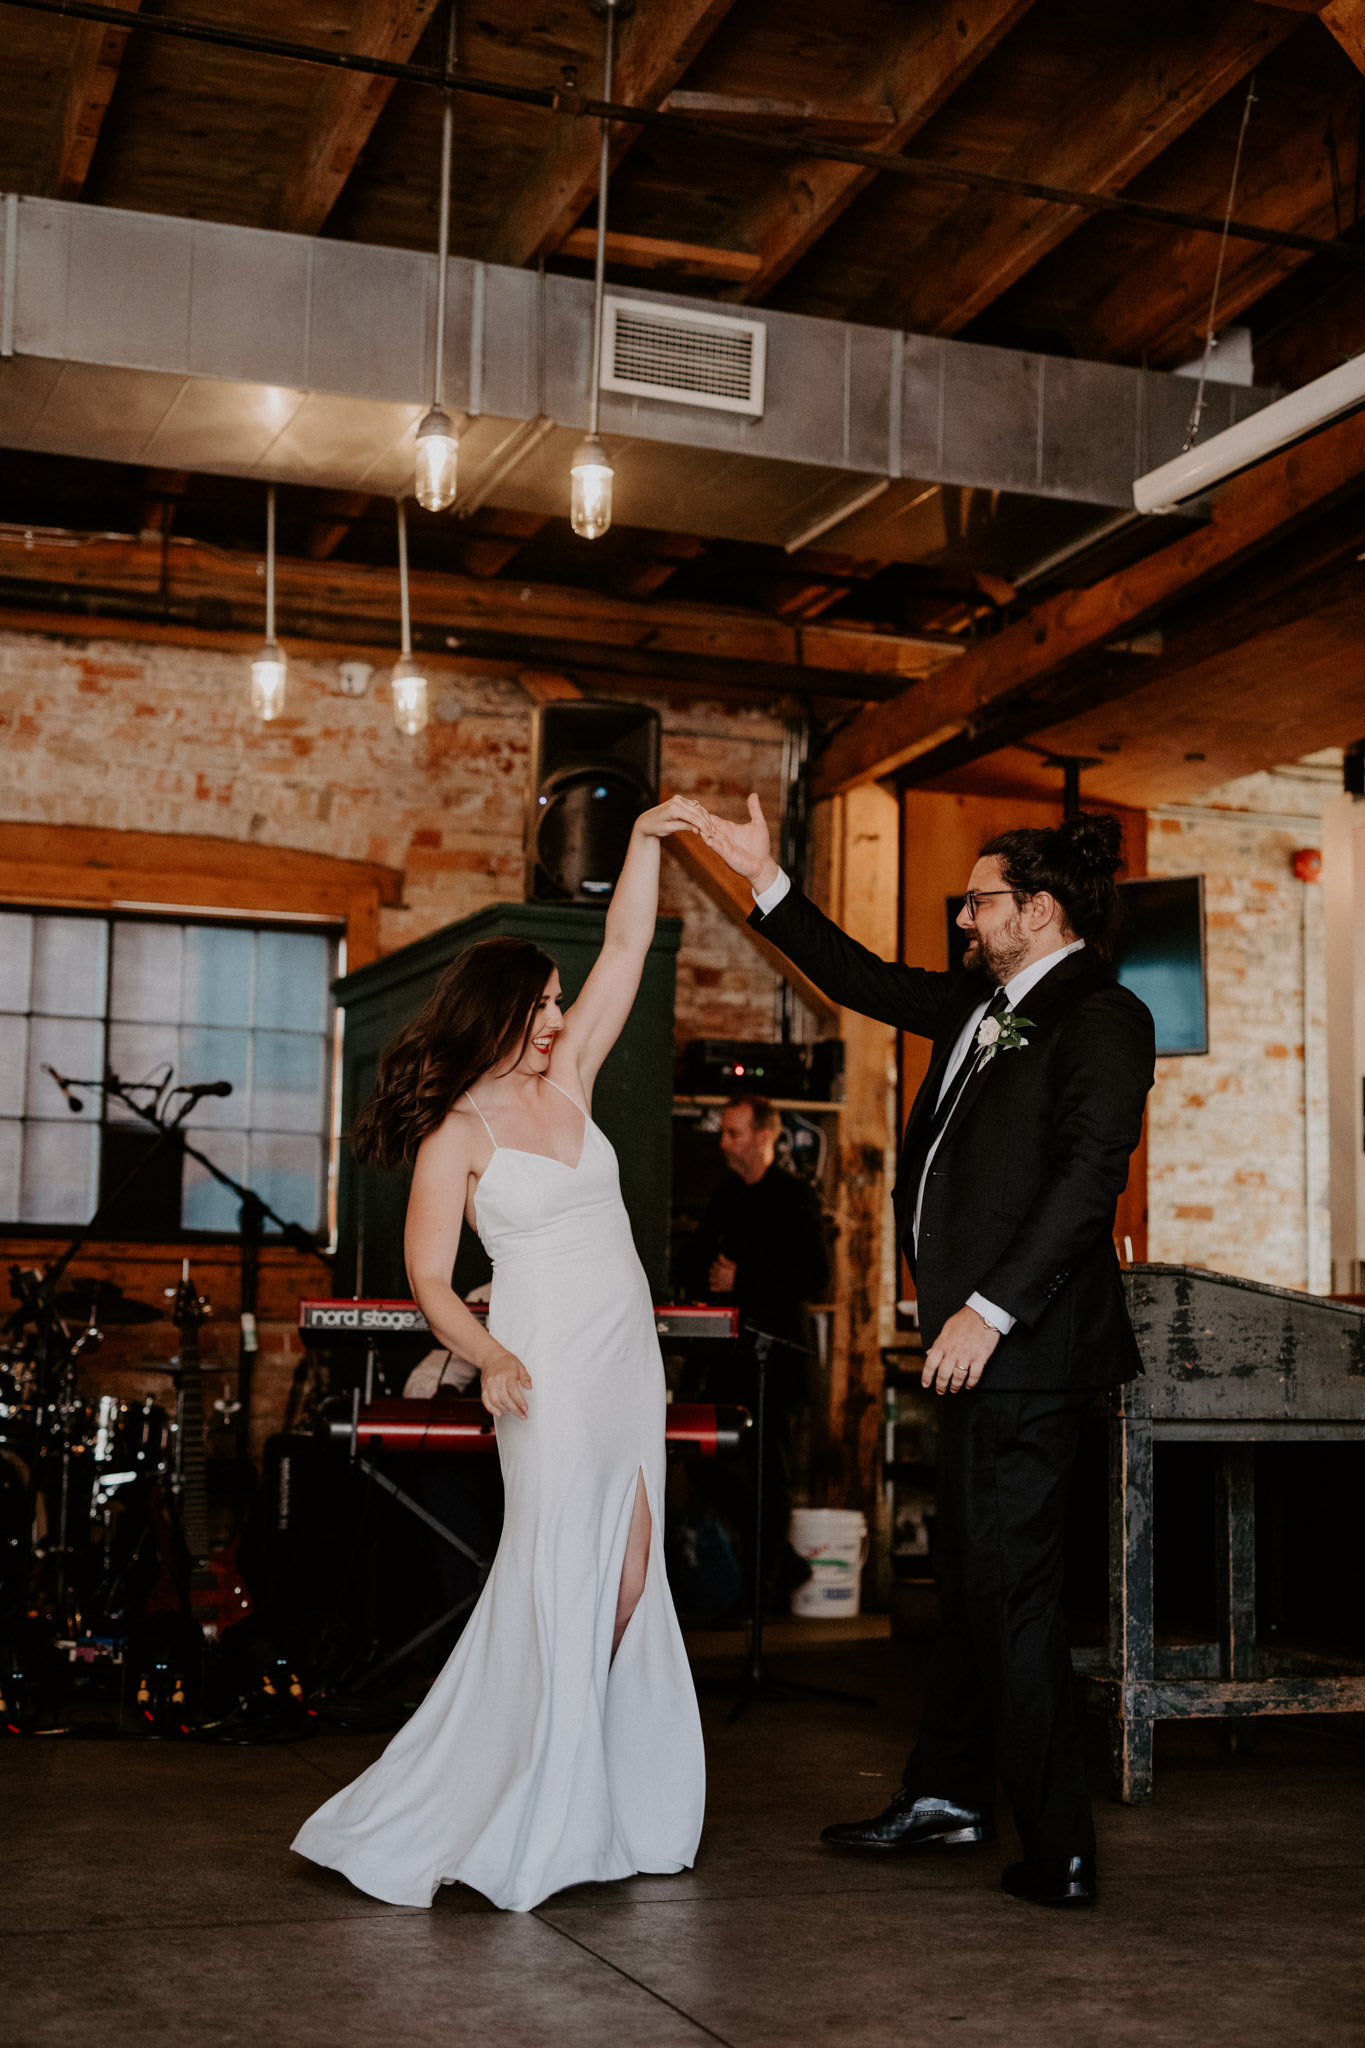 Archeo Wedding- Bride and Groom First Dance - Distillery District